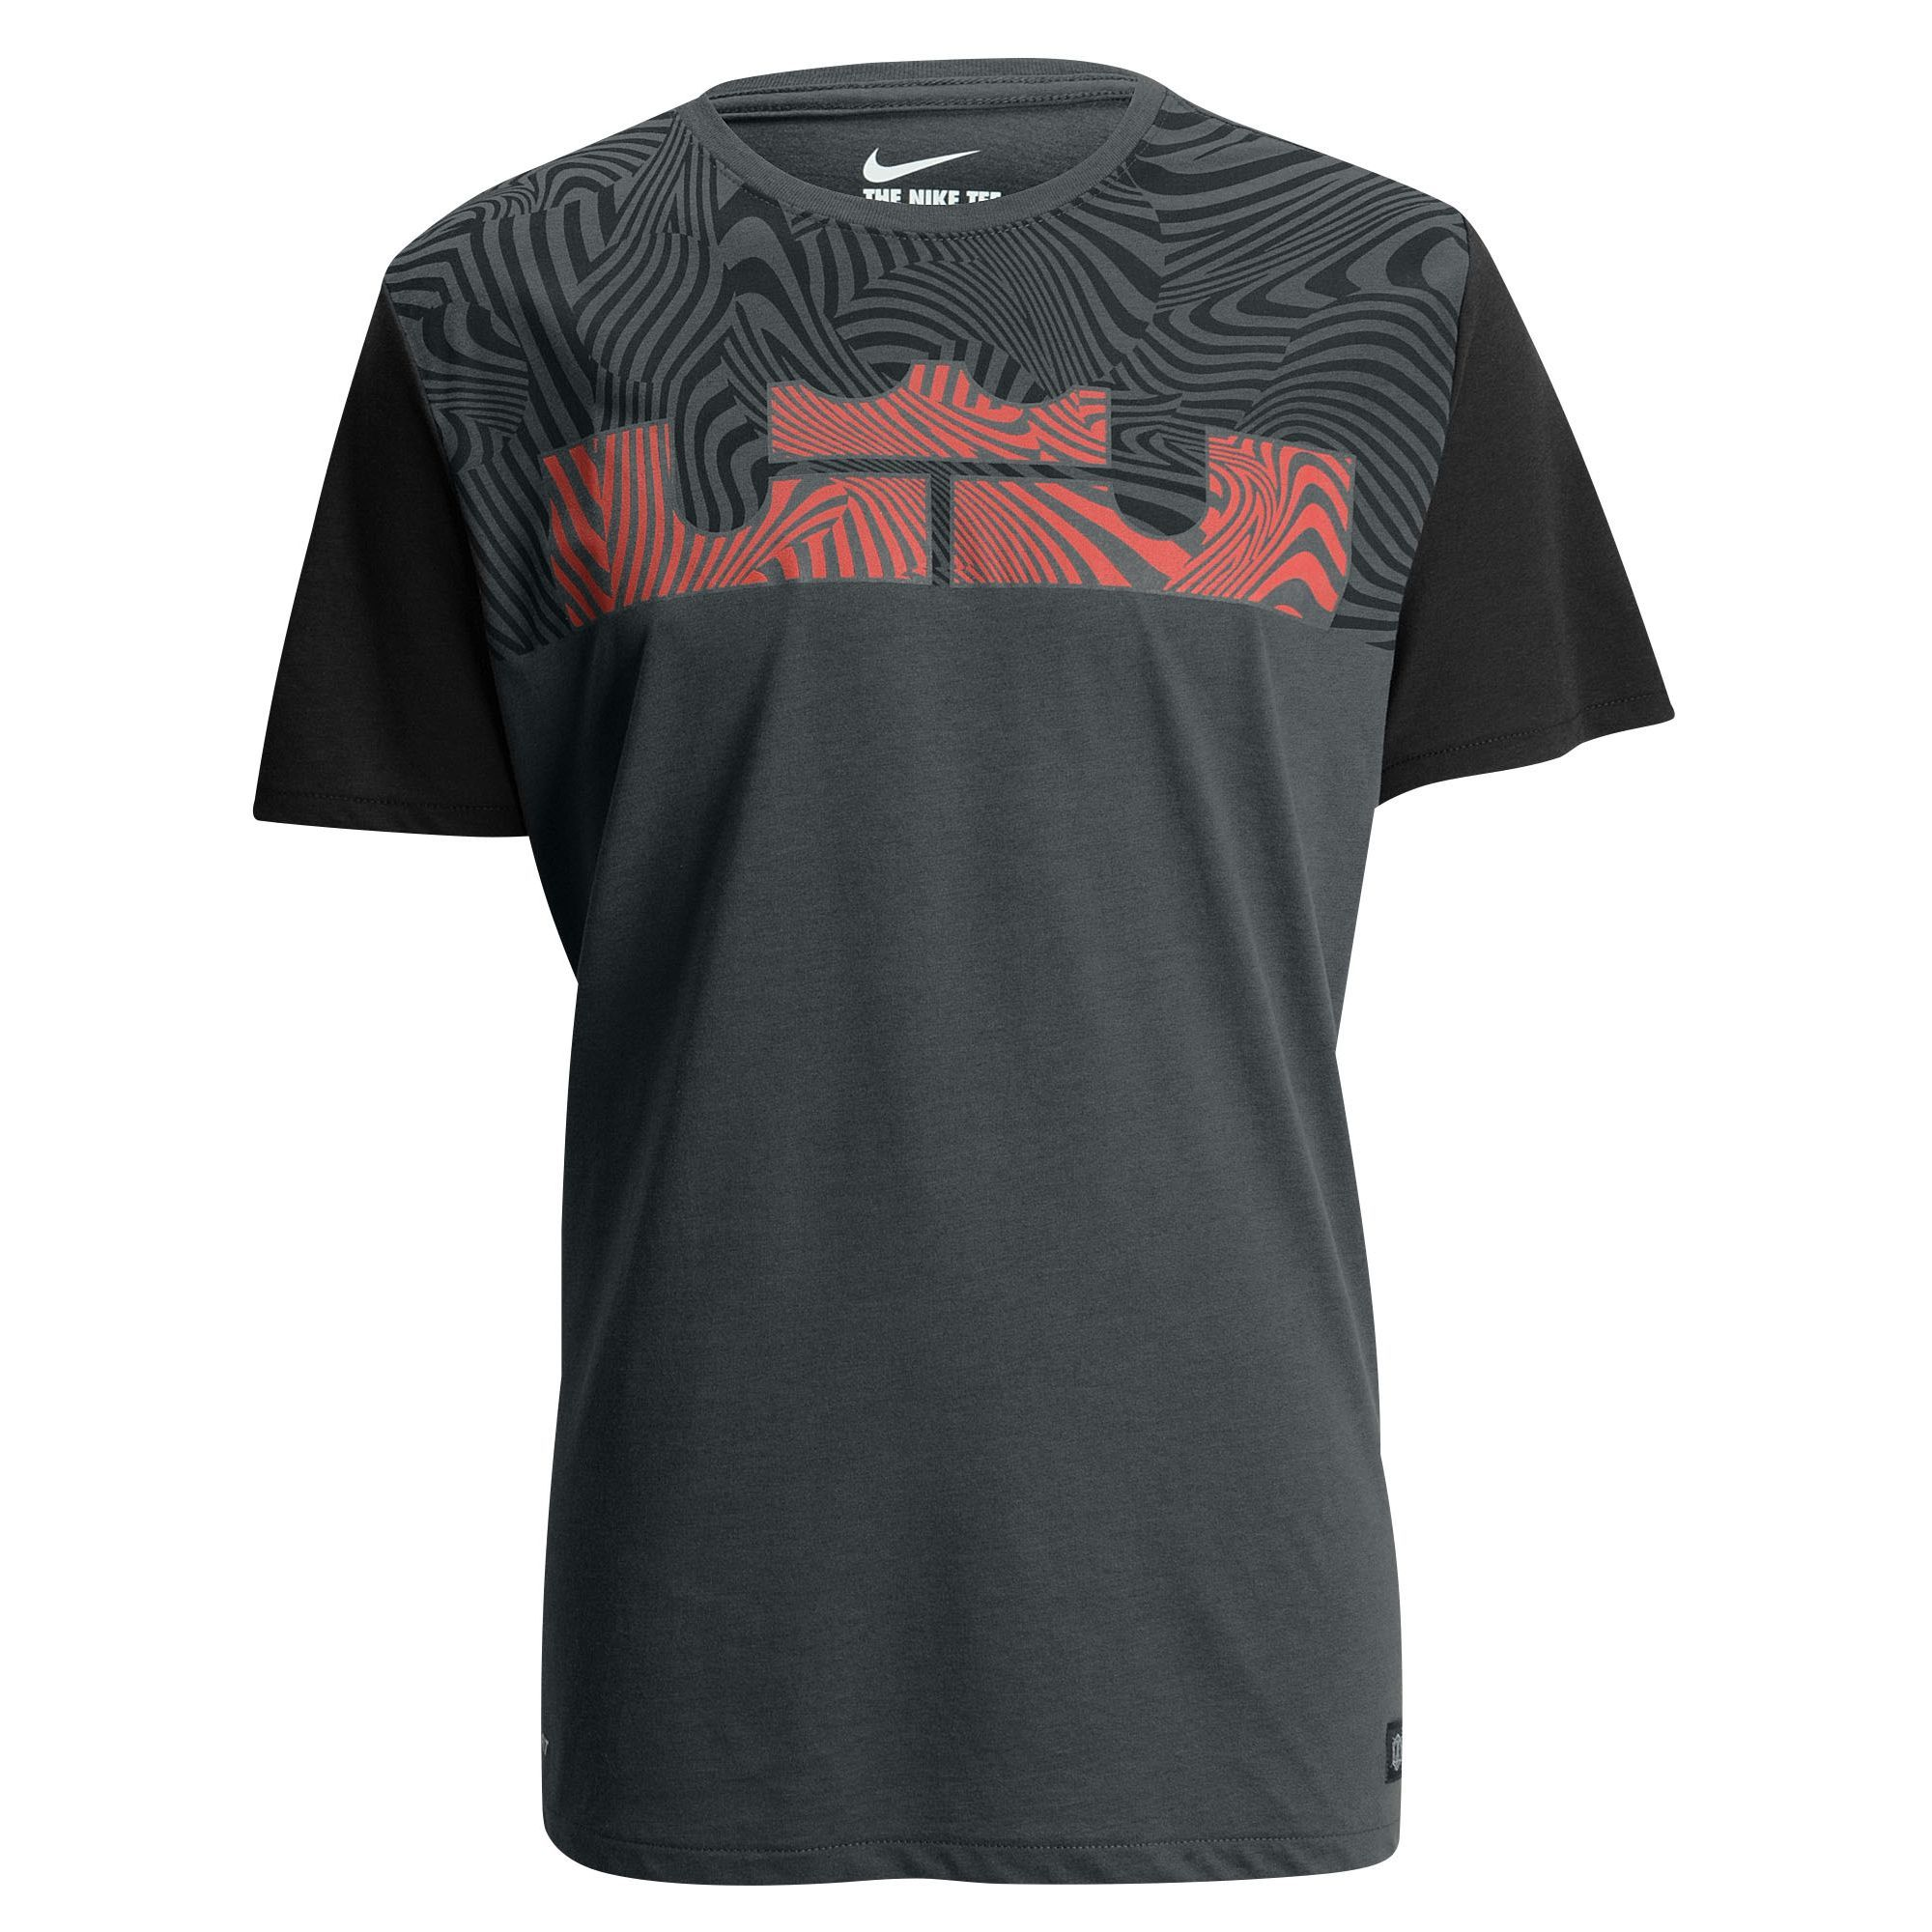 Nike Lebron Court Vision T-Shirt - Men's - Clothing